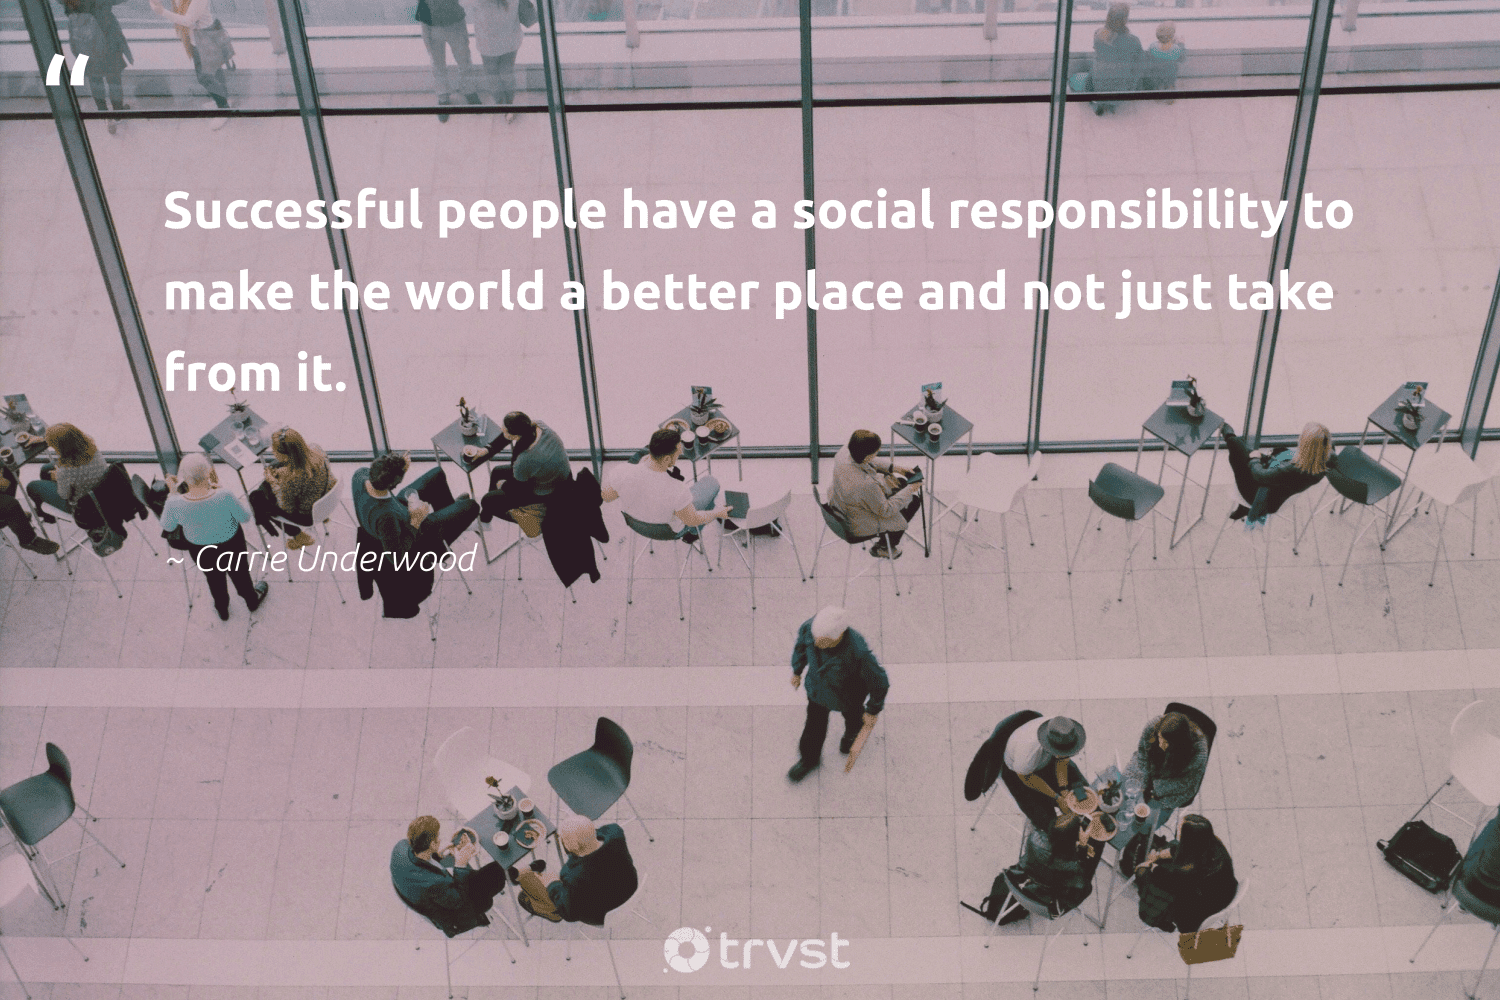 """""""Successful people have a social responsibility to make the world a better place and not just take from it.""""  - Carrie Underwood #trvst #quotes #weareallone #bethechange #sustainable #dotherightthing #sharedresponsibility #dosomething #dogood #beinspired #ethicalbusiness #collectiveaction"""